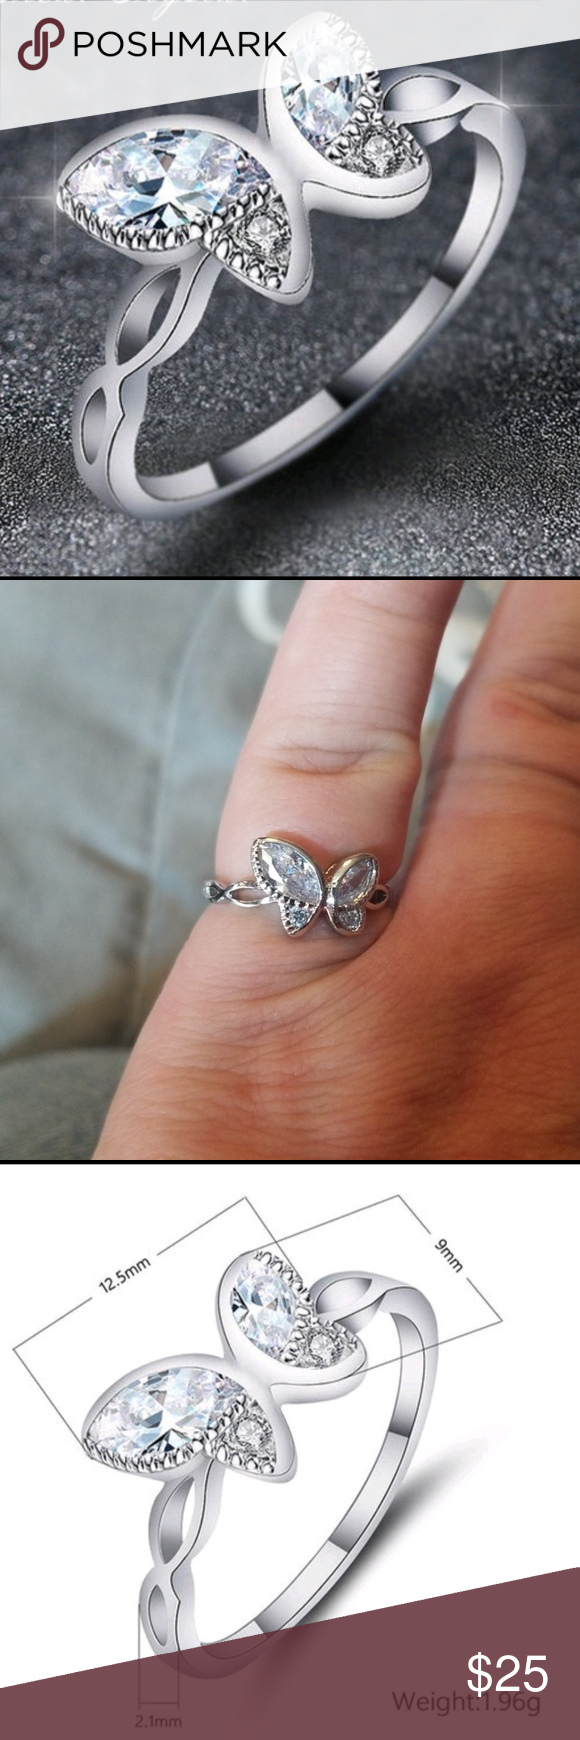 SALE New CZ butterfly ring size 6 Boutique (With images